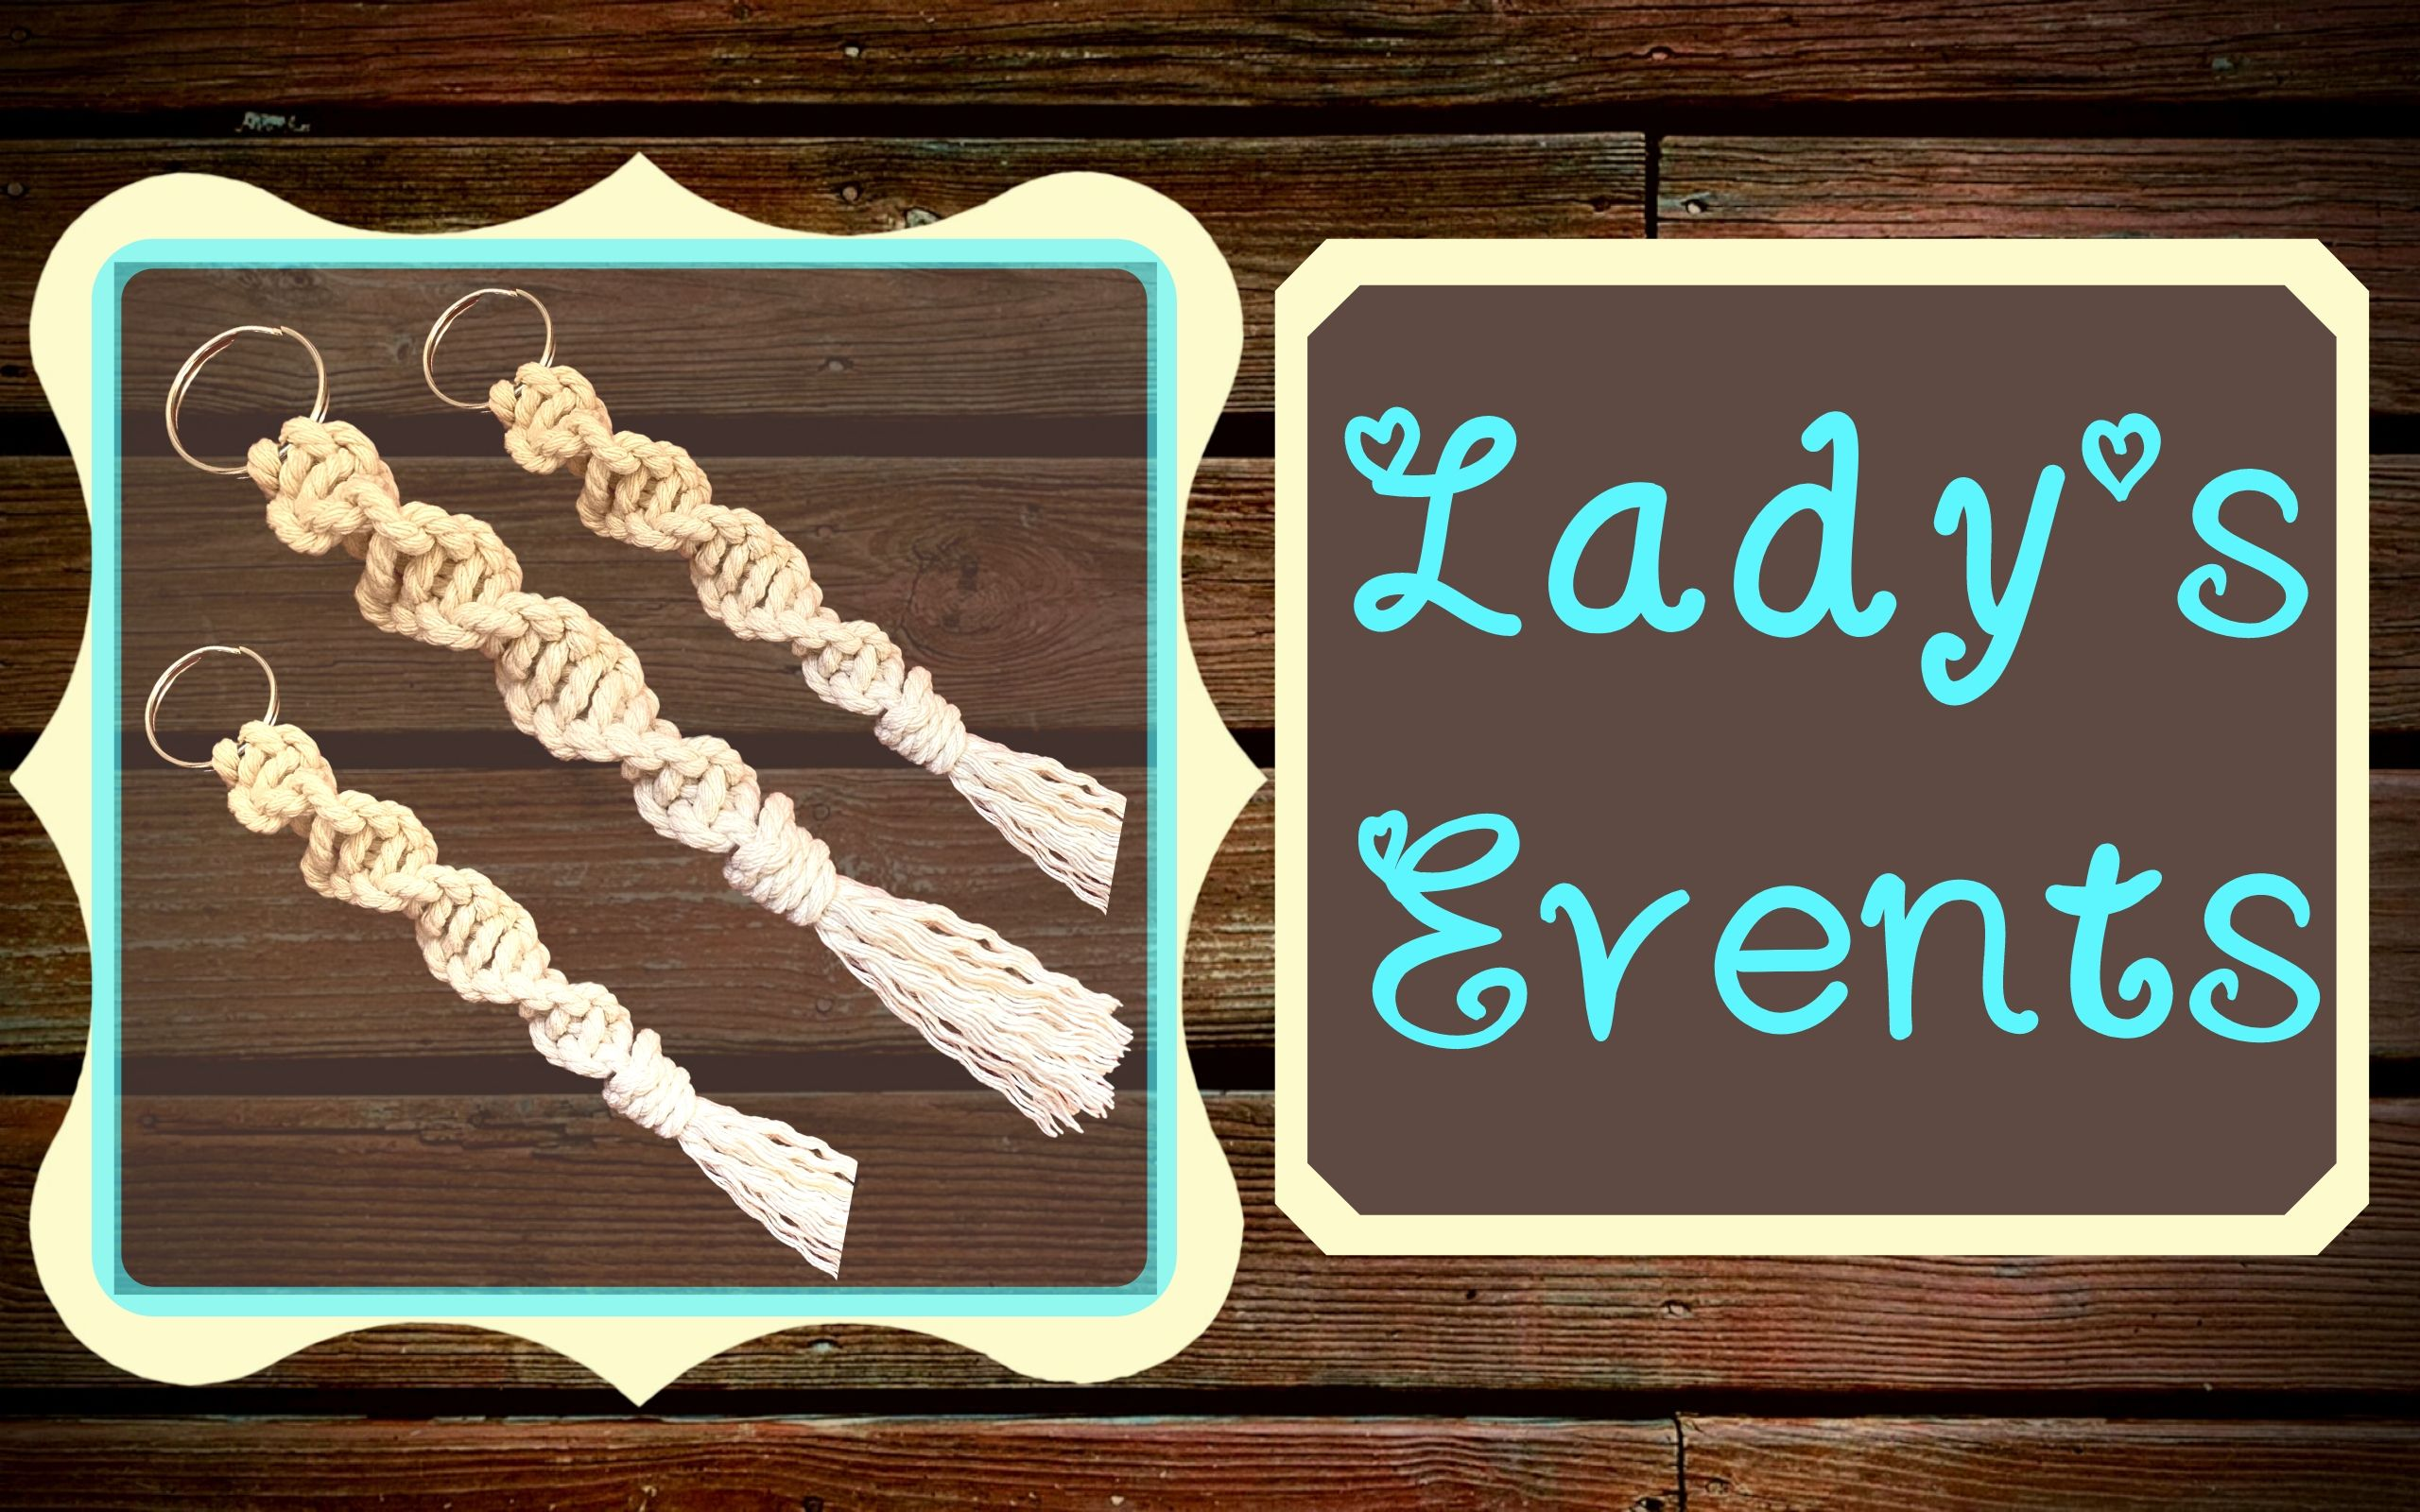 Party With Favor - DIY Party Favor Ideas Worth Keeping - Lady's Events